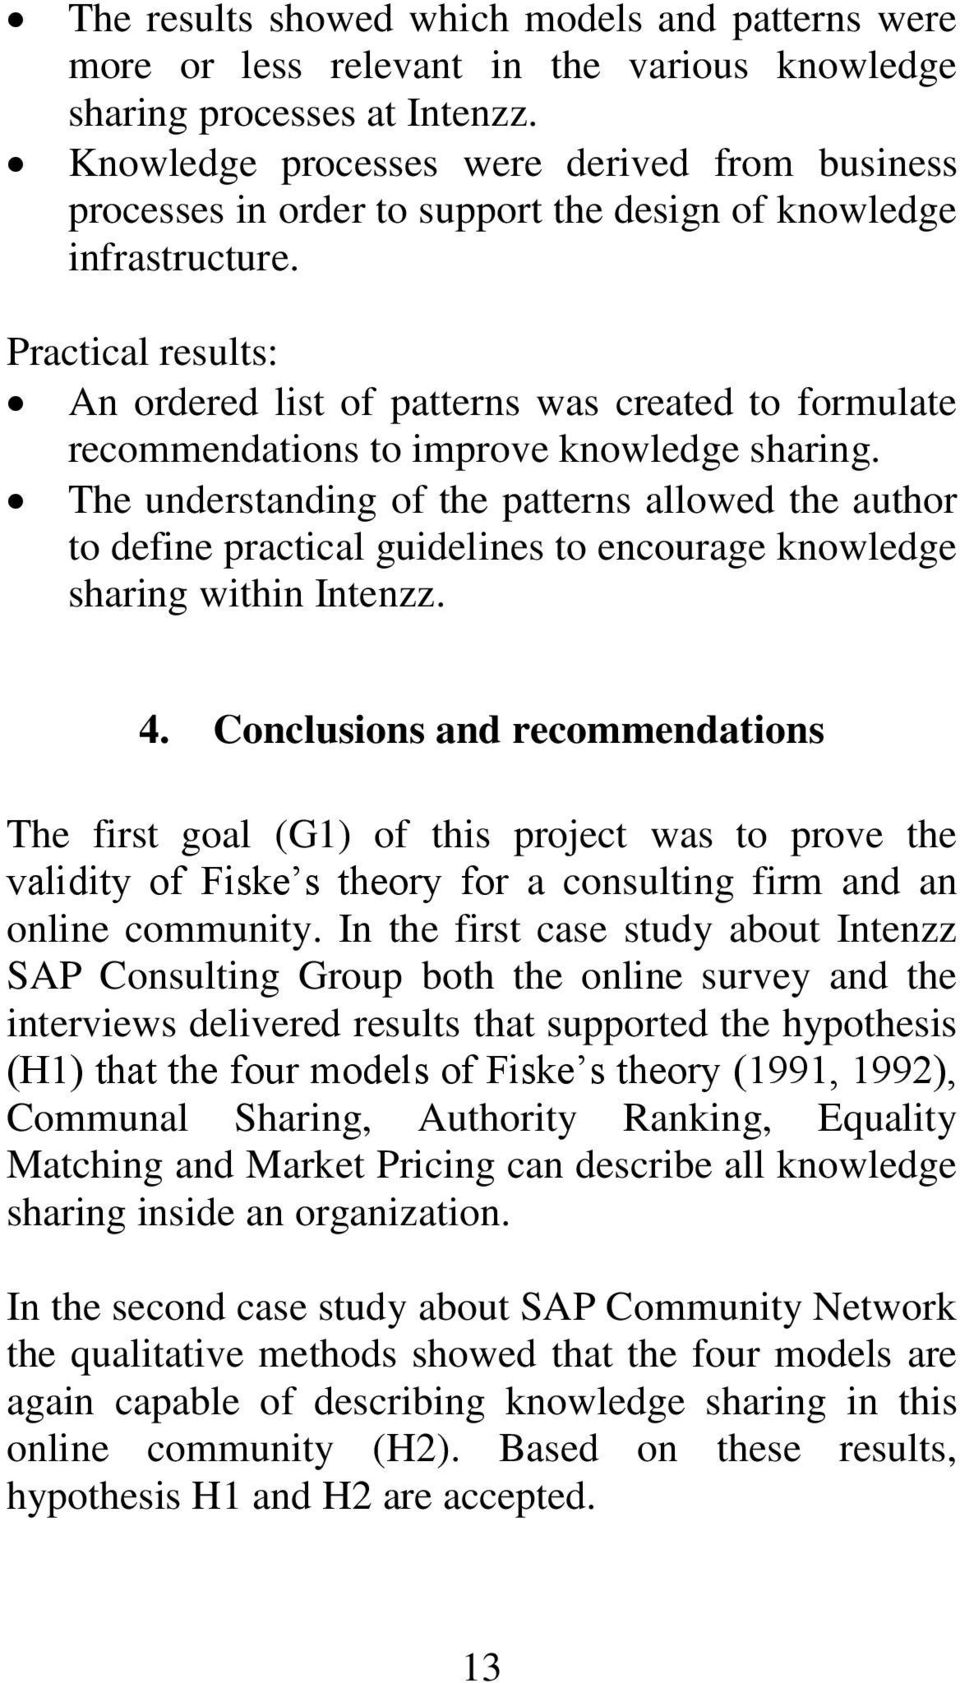 Practical results: An ordered list of patterns was created to formulate recommendations to improve knowledge sharing.